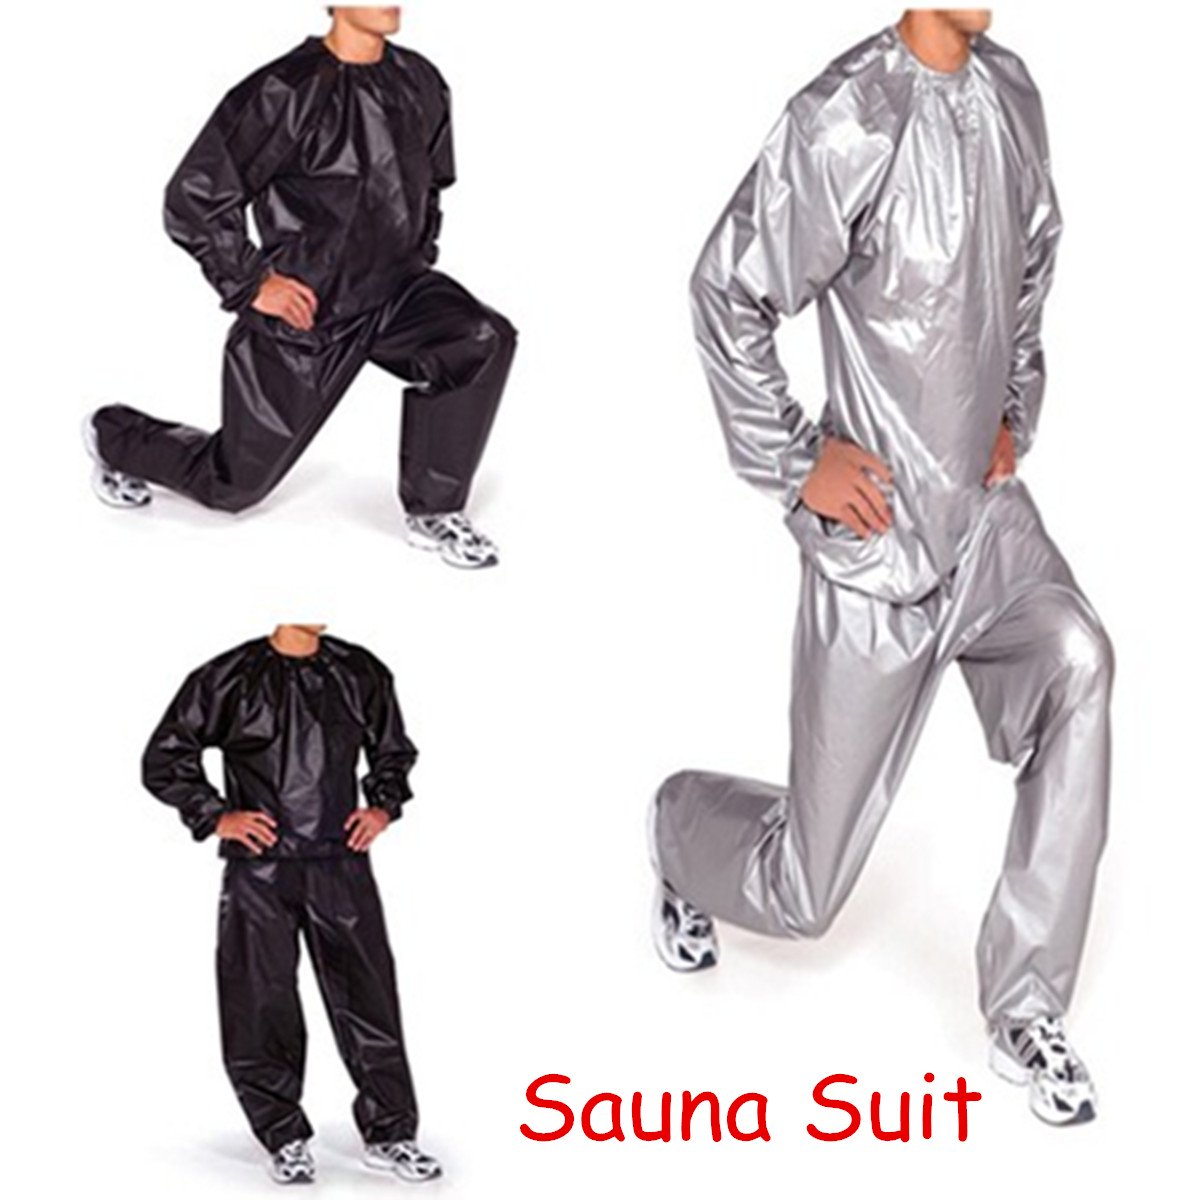 Unisex Sauna Suit Weight Loss Fitness Sweat Suit Sauna Yoga Stretch Workout Suit Exercise Gym